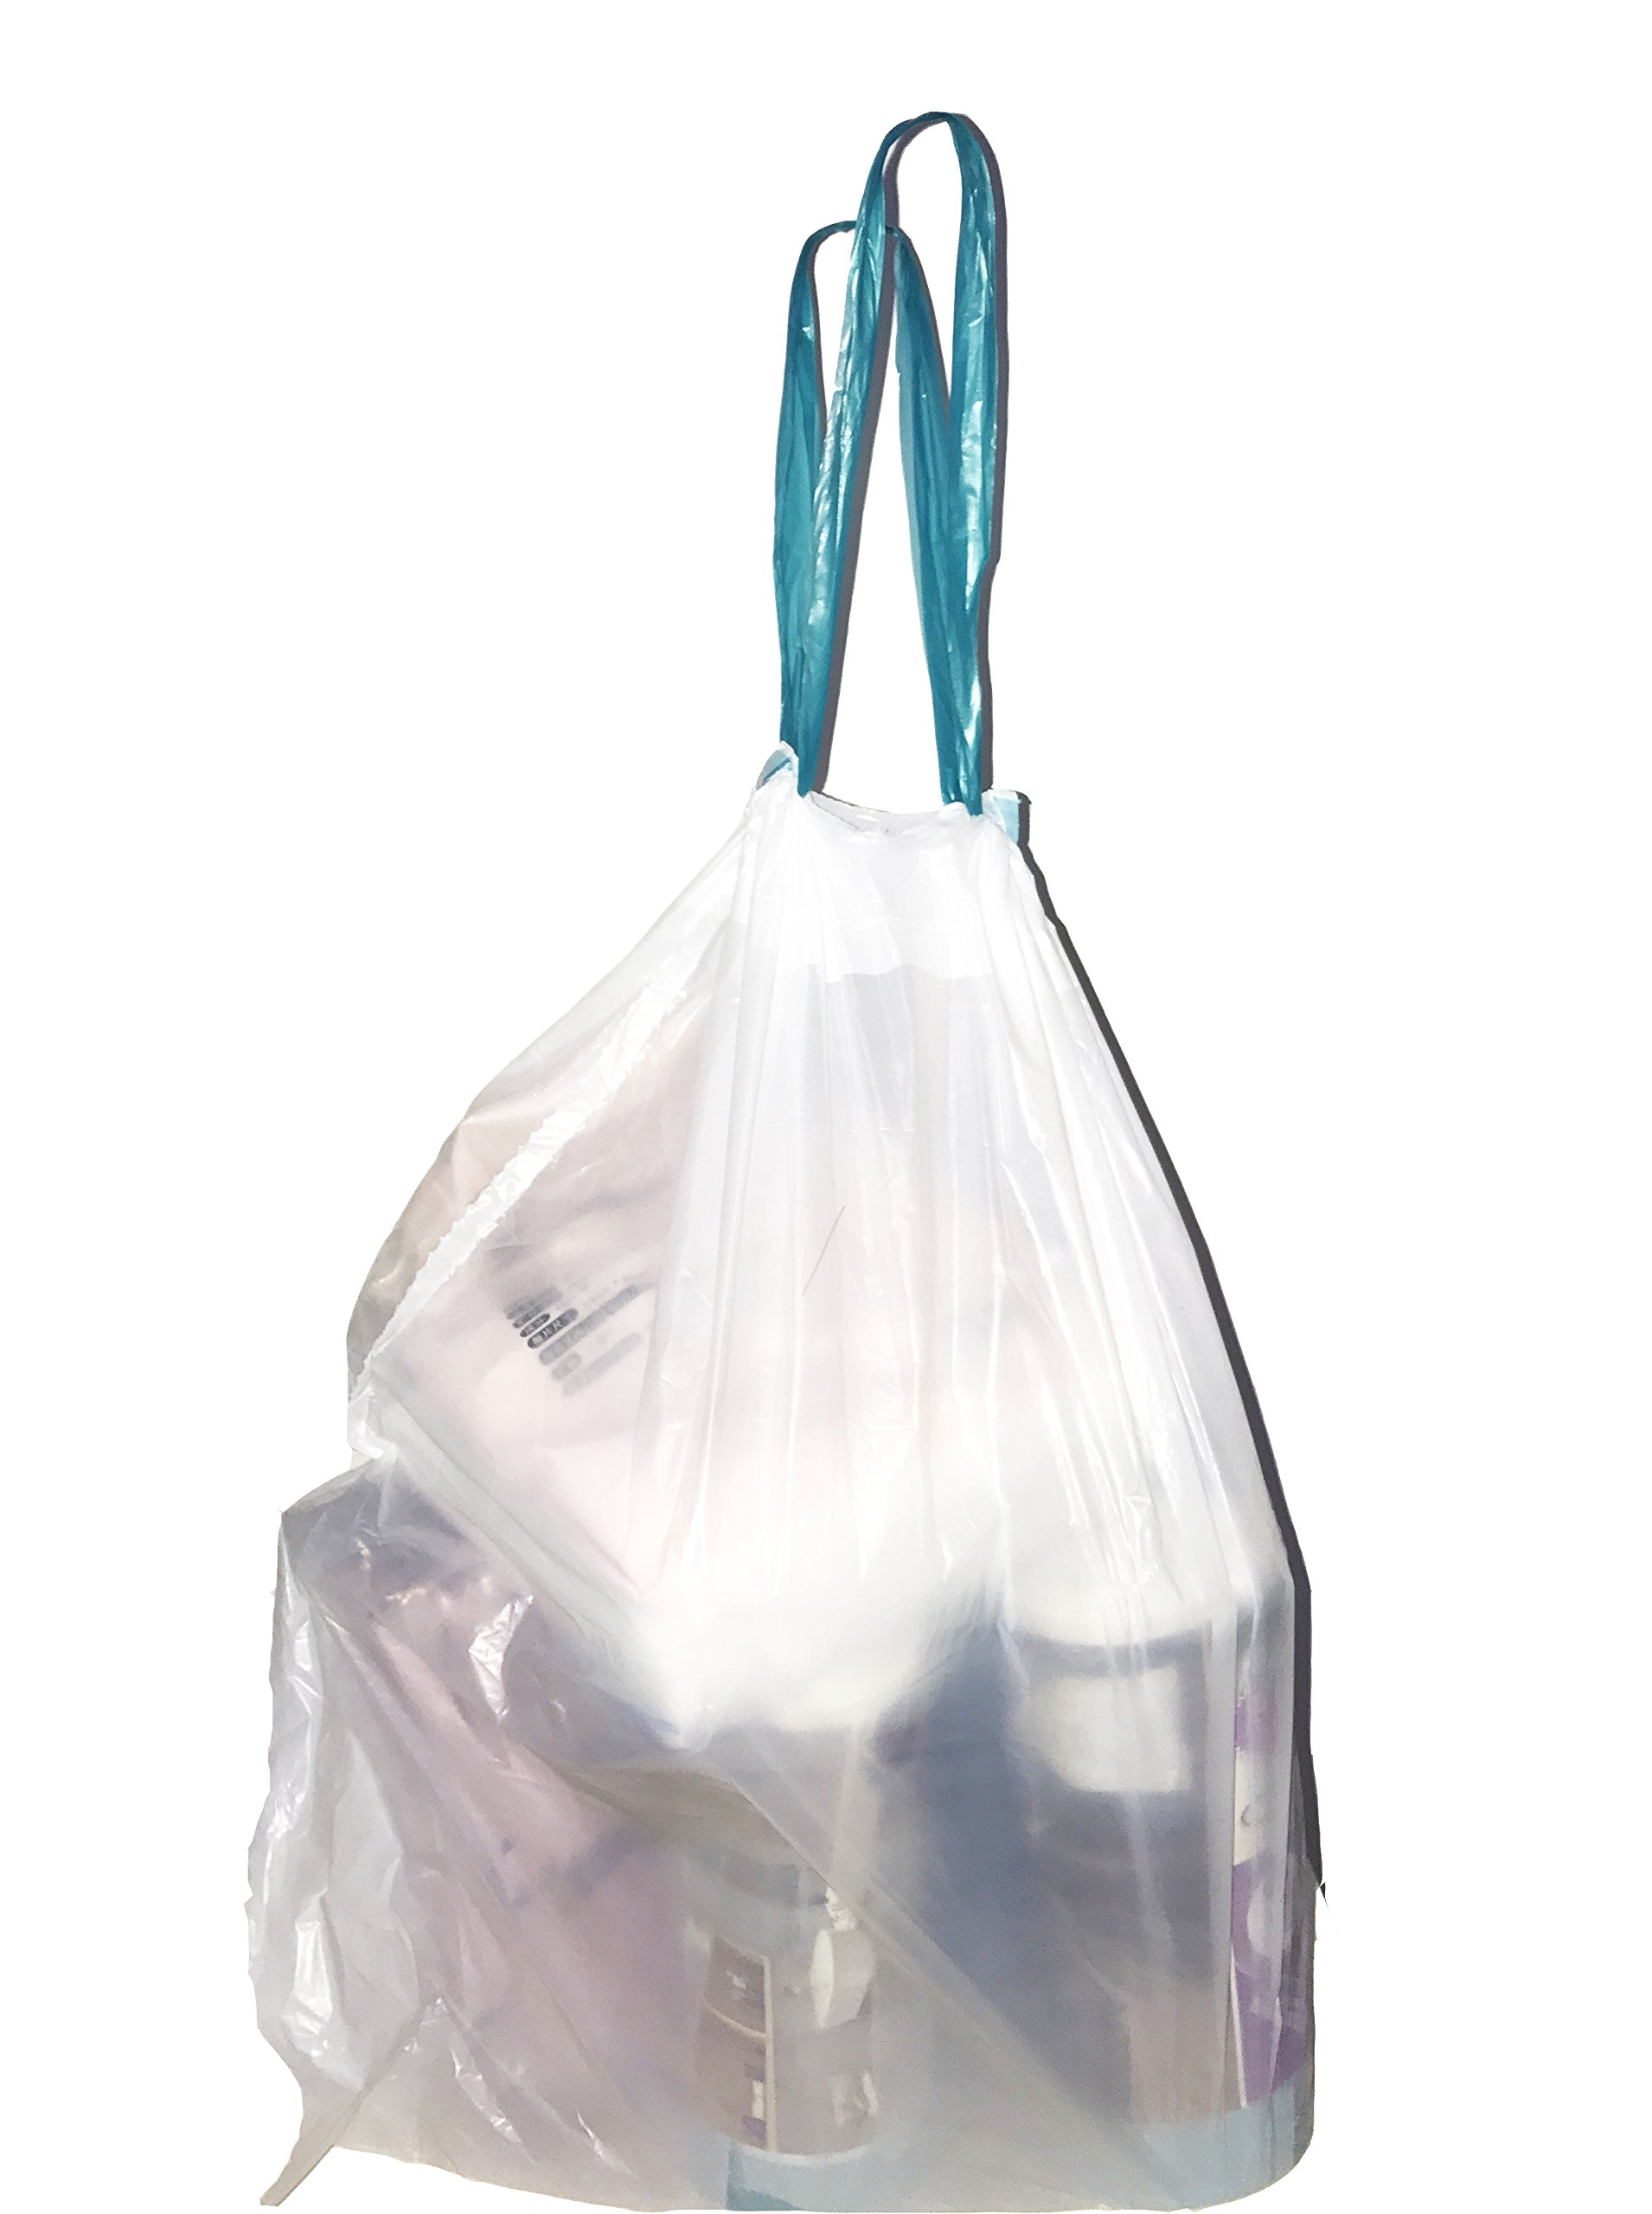 W&S 2.3 Gallon Kitchen Drawstring Strong Trash Bags, Heavy Duty, Clear, 120 Counts/ 2 Rolls by W&S (Image #4)